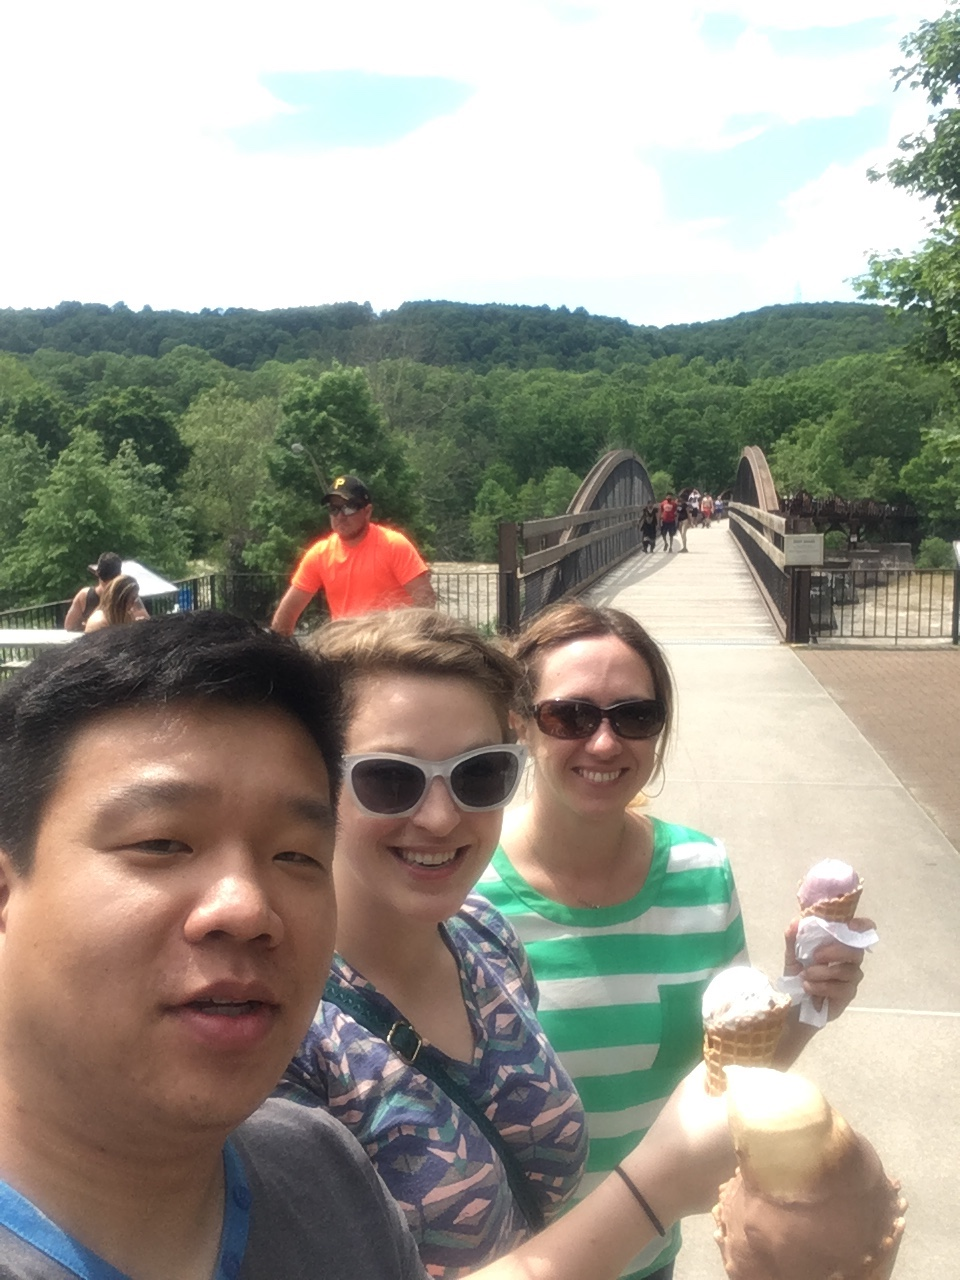 Ice cream and a bridge. What could be better?